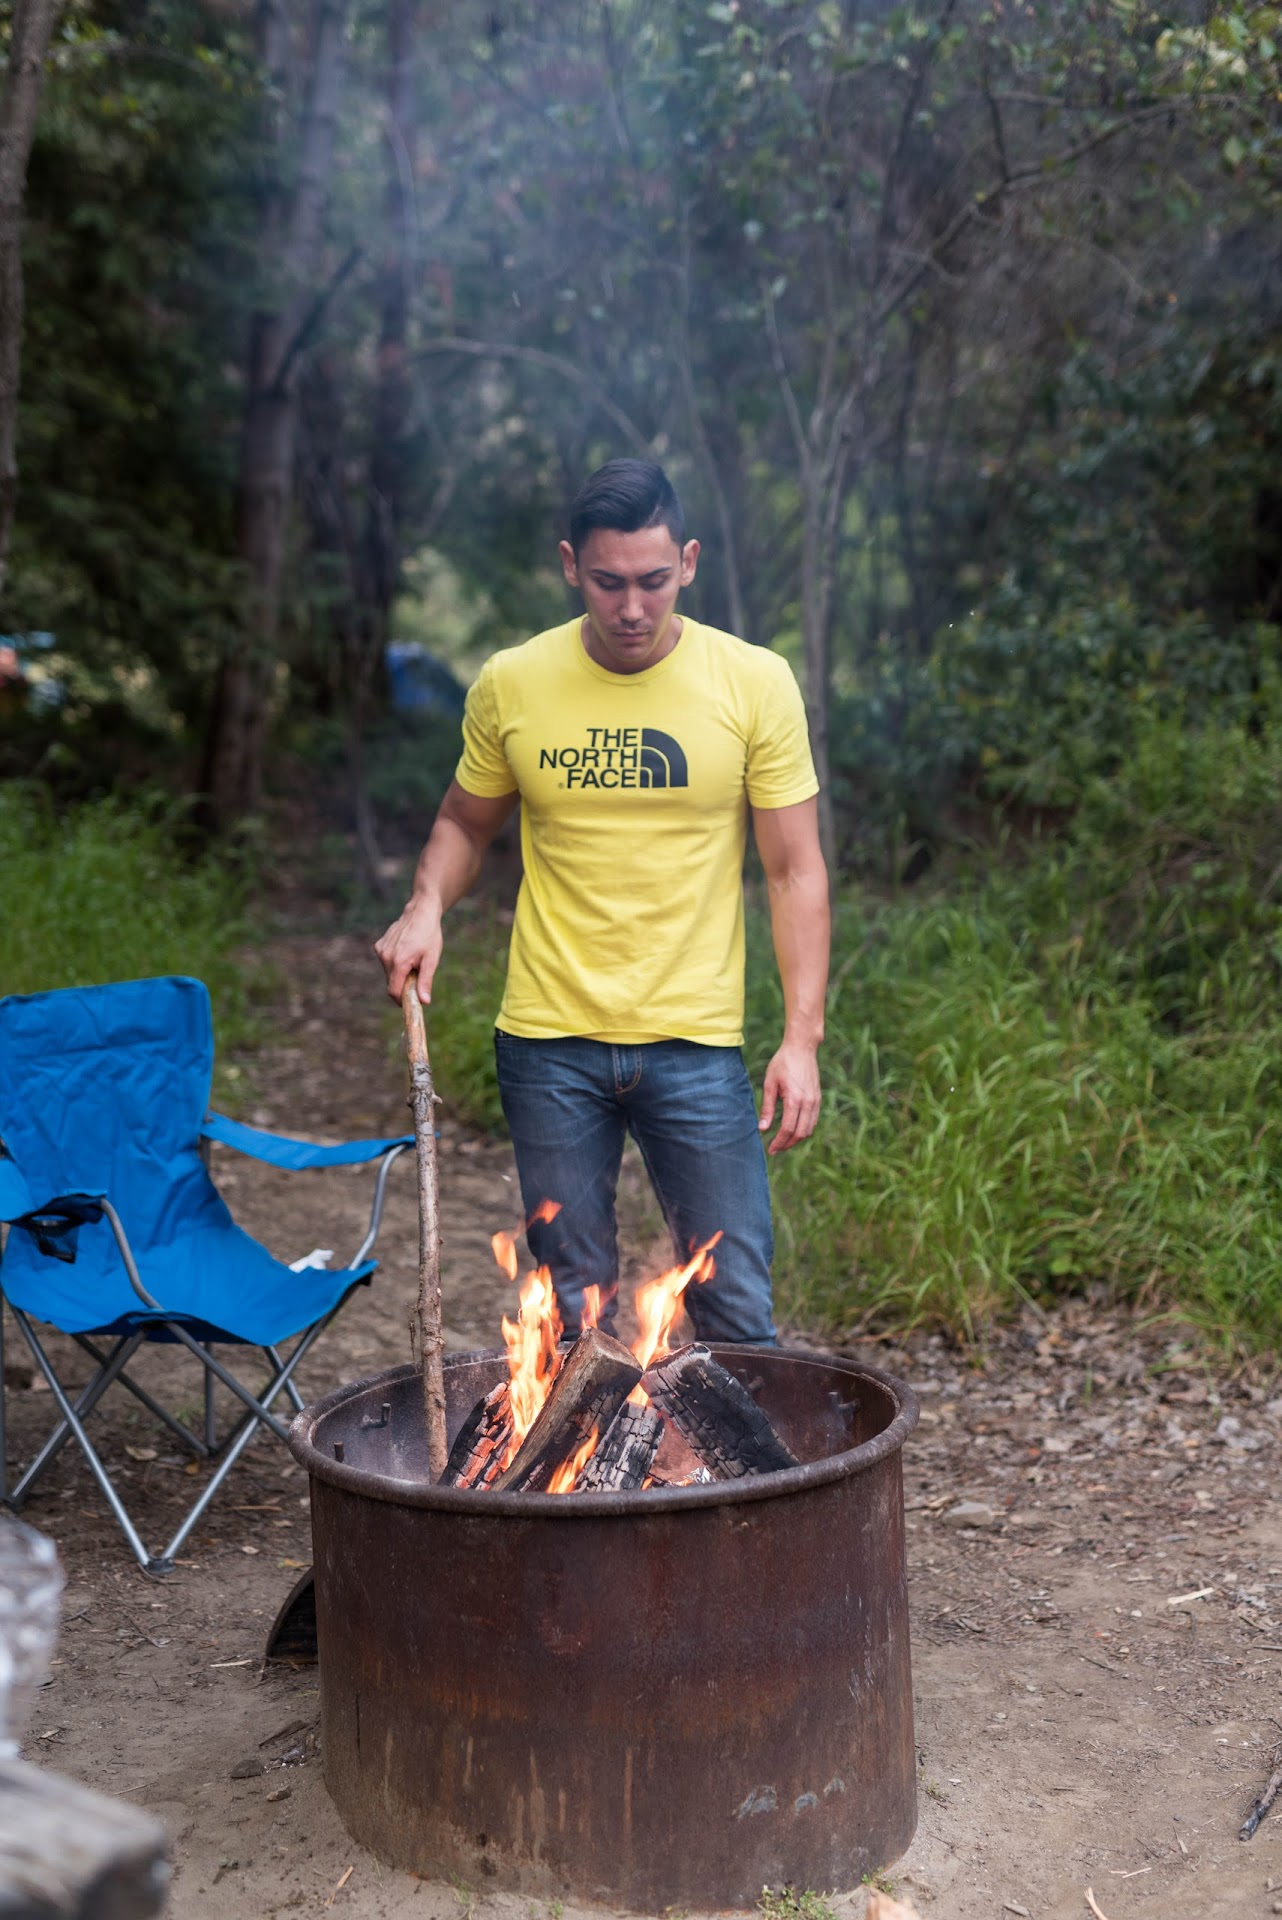 tips for camping in big sur, where to camp in big sur, best places to camp in big sur, big sur camping prices, monterey, big sur travel blogger, pfieffer state park, camp sites, camping couple,